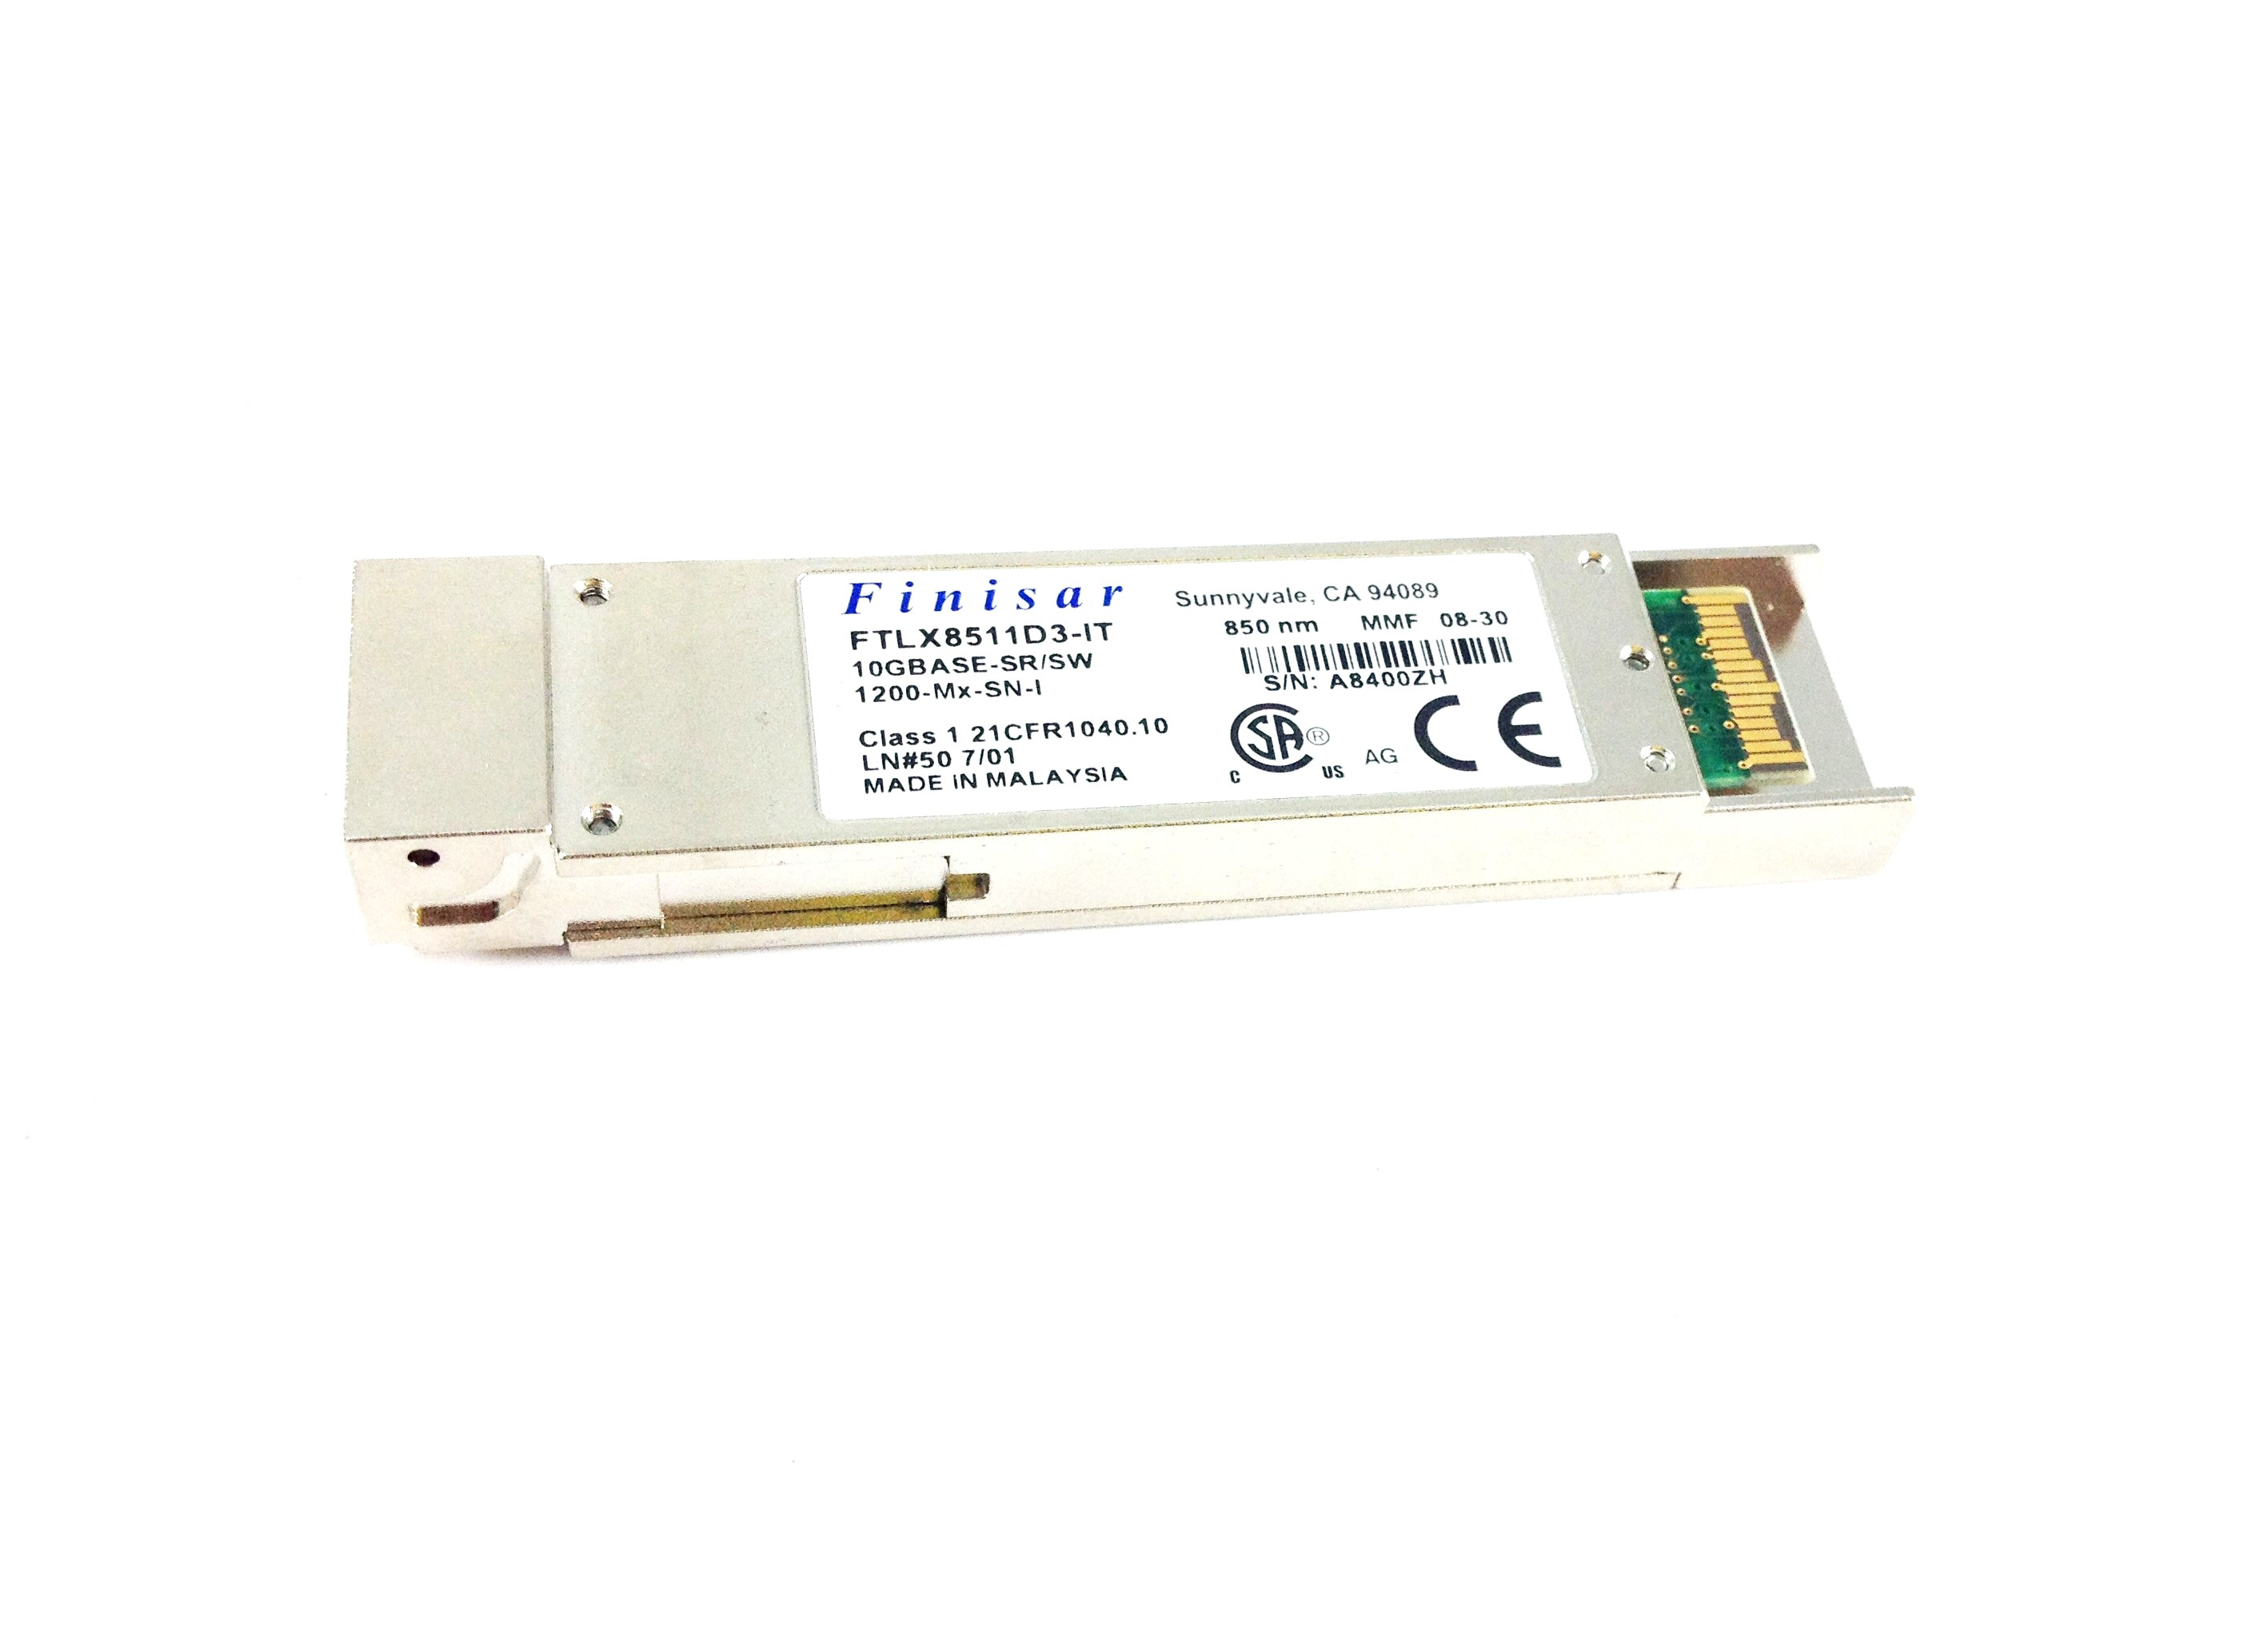 Finisar 10GB 10Gbase-Sr/Sw 850NM 300M XFP Transceiver (FTLX8511D3-IT)